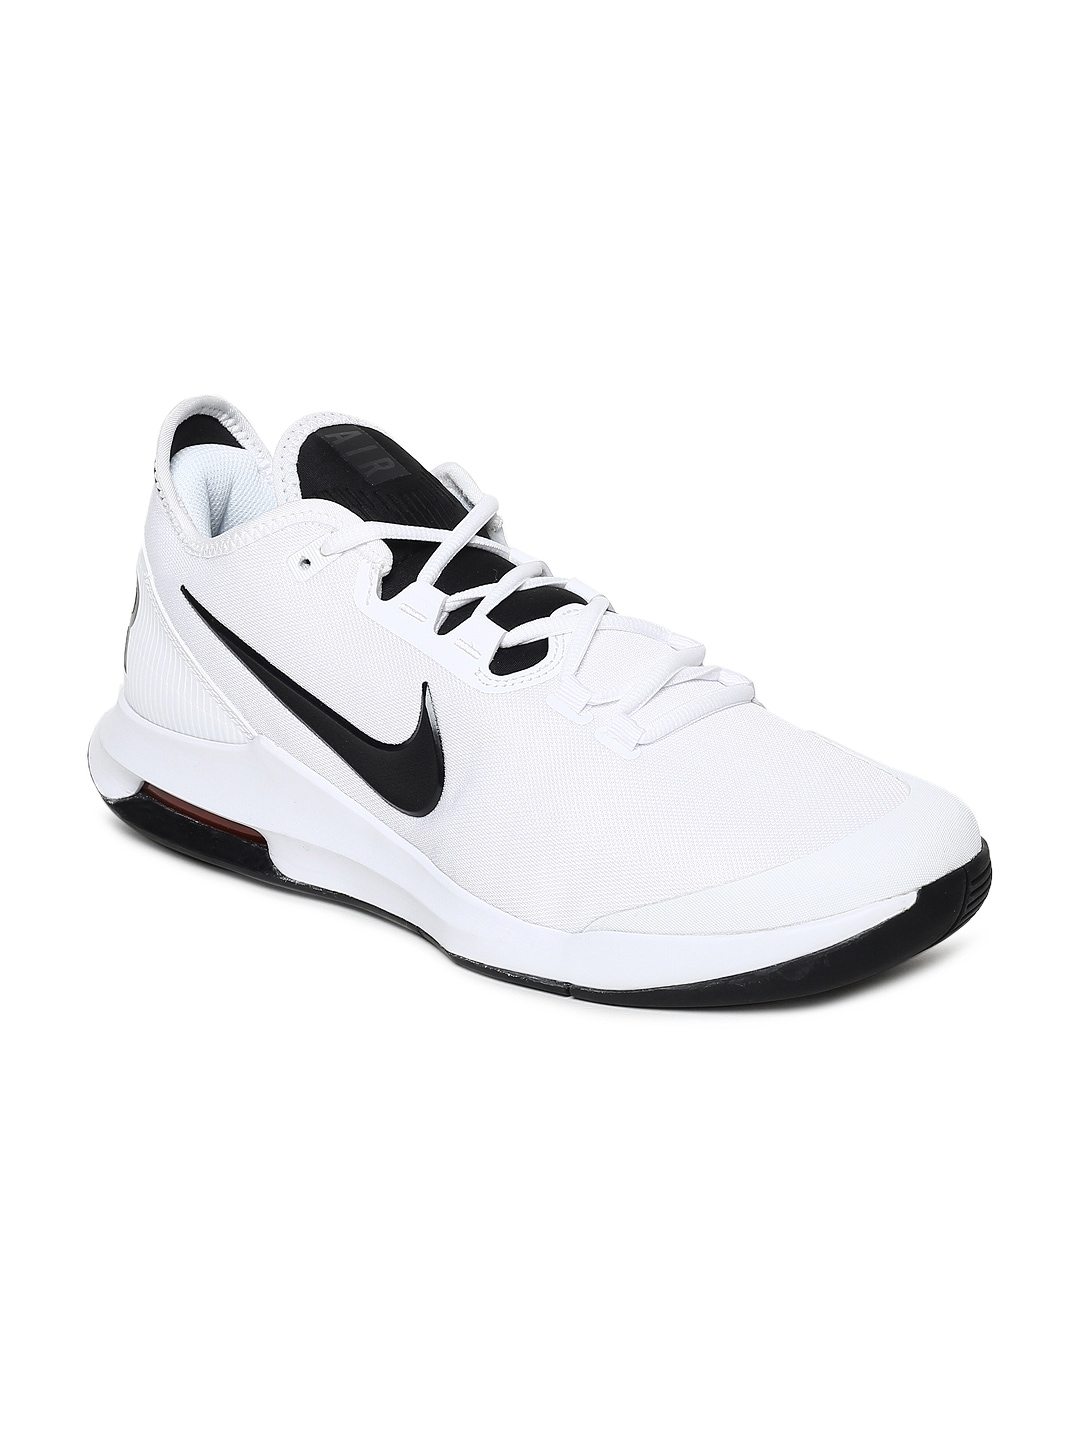 db32b2ba7bc Nike Shoes - Buy Nike Shoes for Men